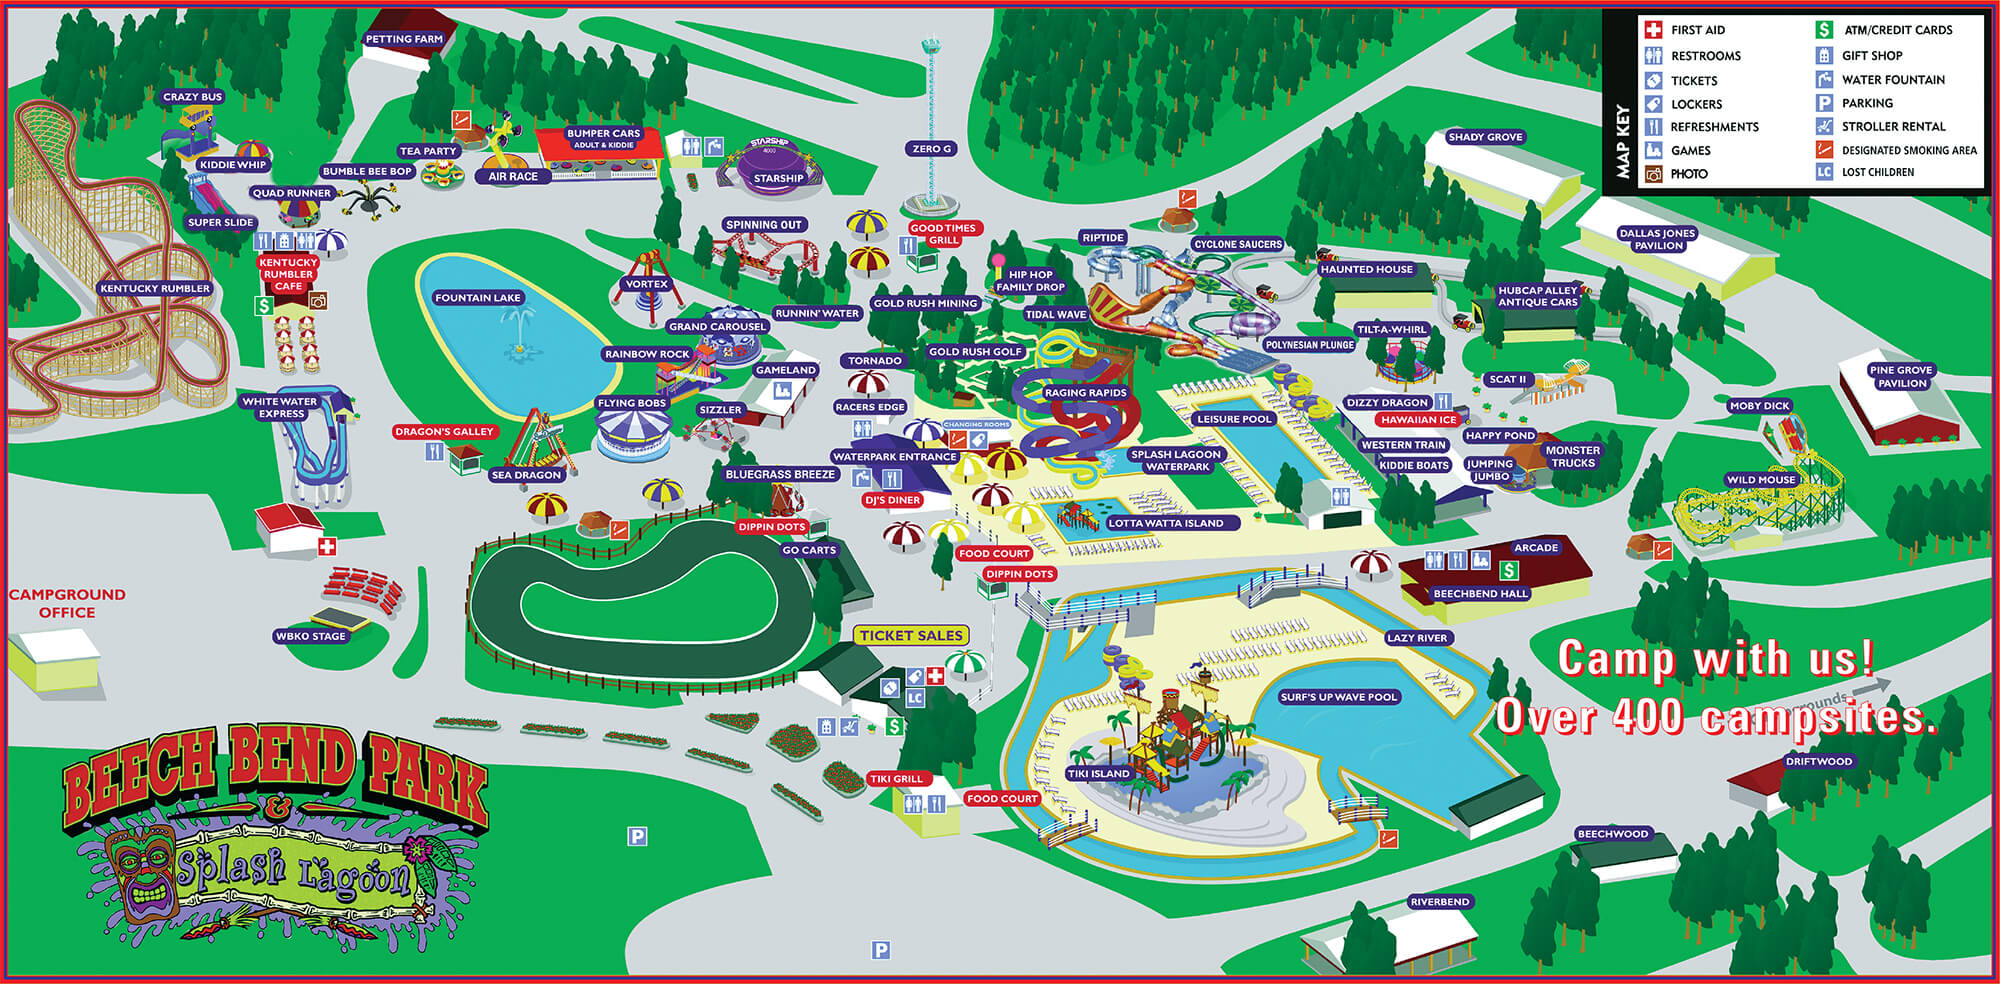 Park Map Beech Bend Amusement Park Bowling Green KY - Map of amusement parks in the us